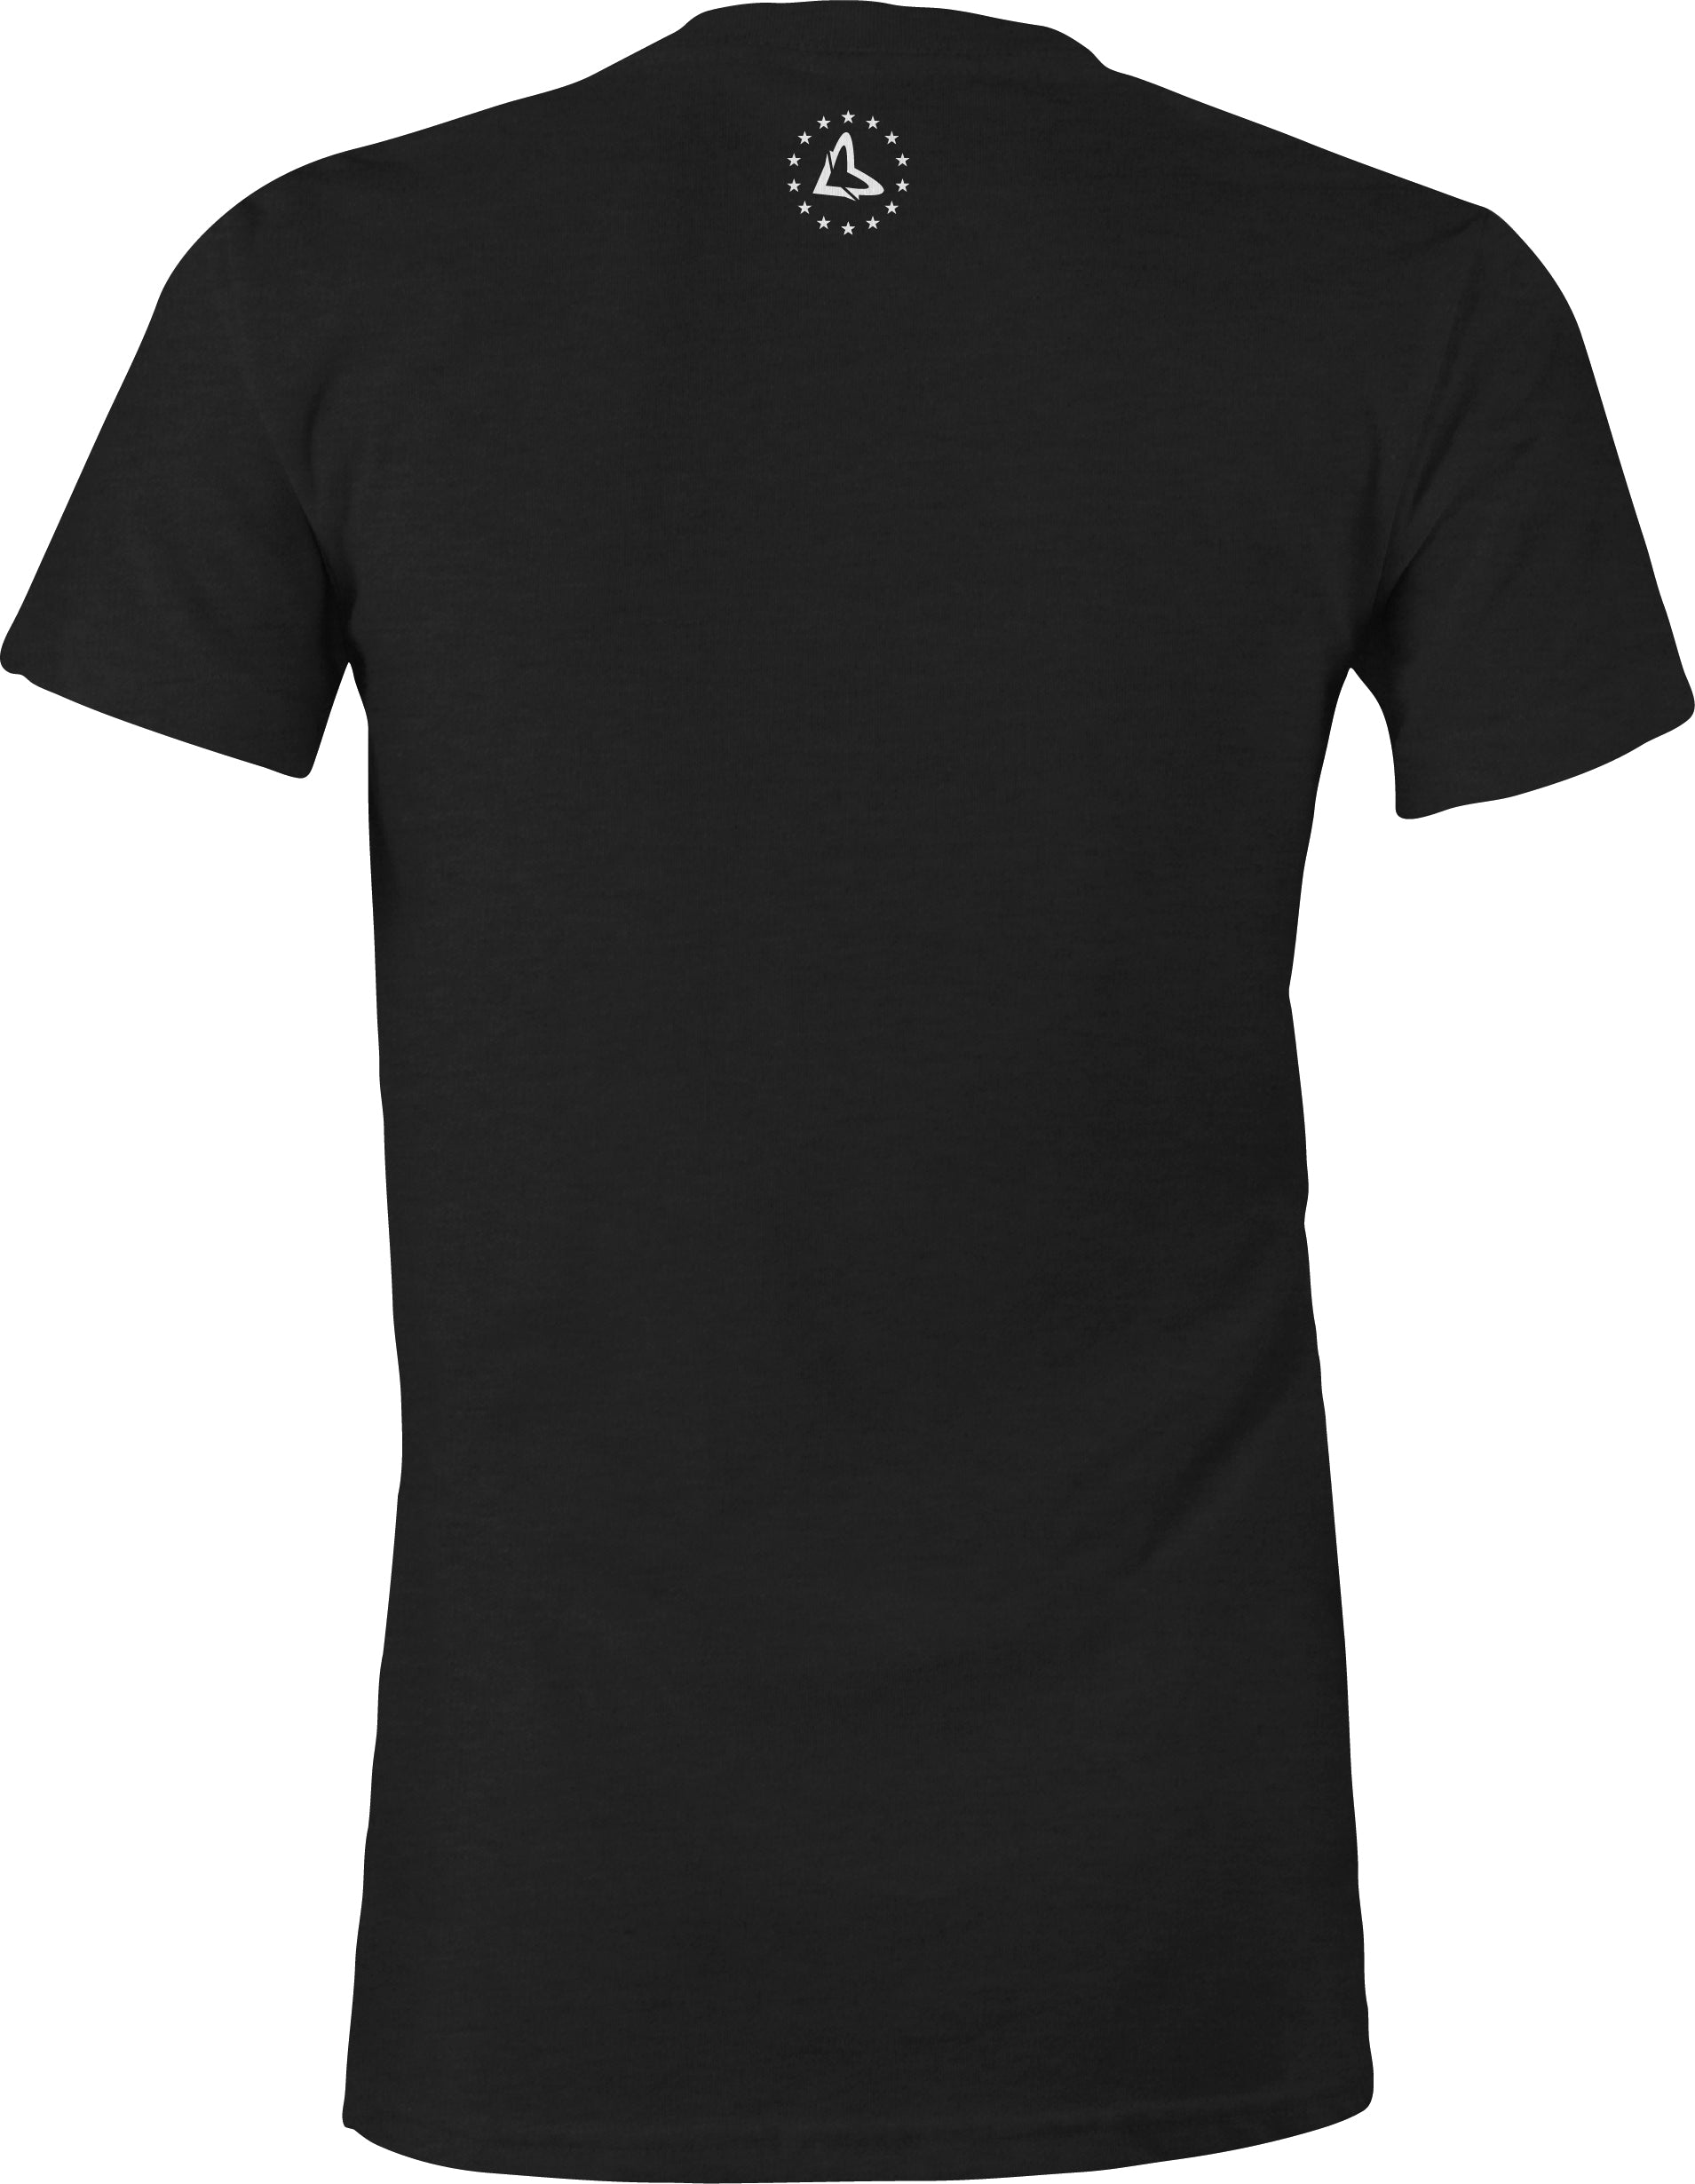 WOMEN'S STAR CIRCLE - BLACK TEE